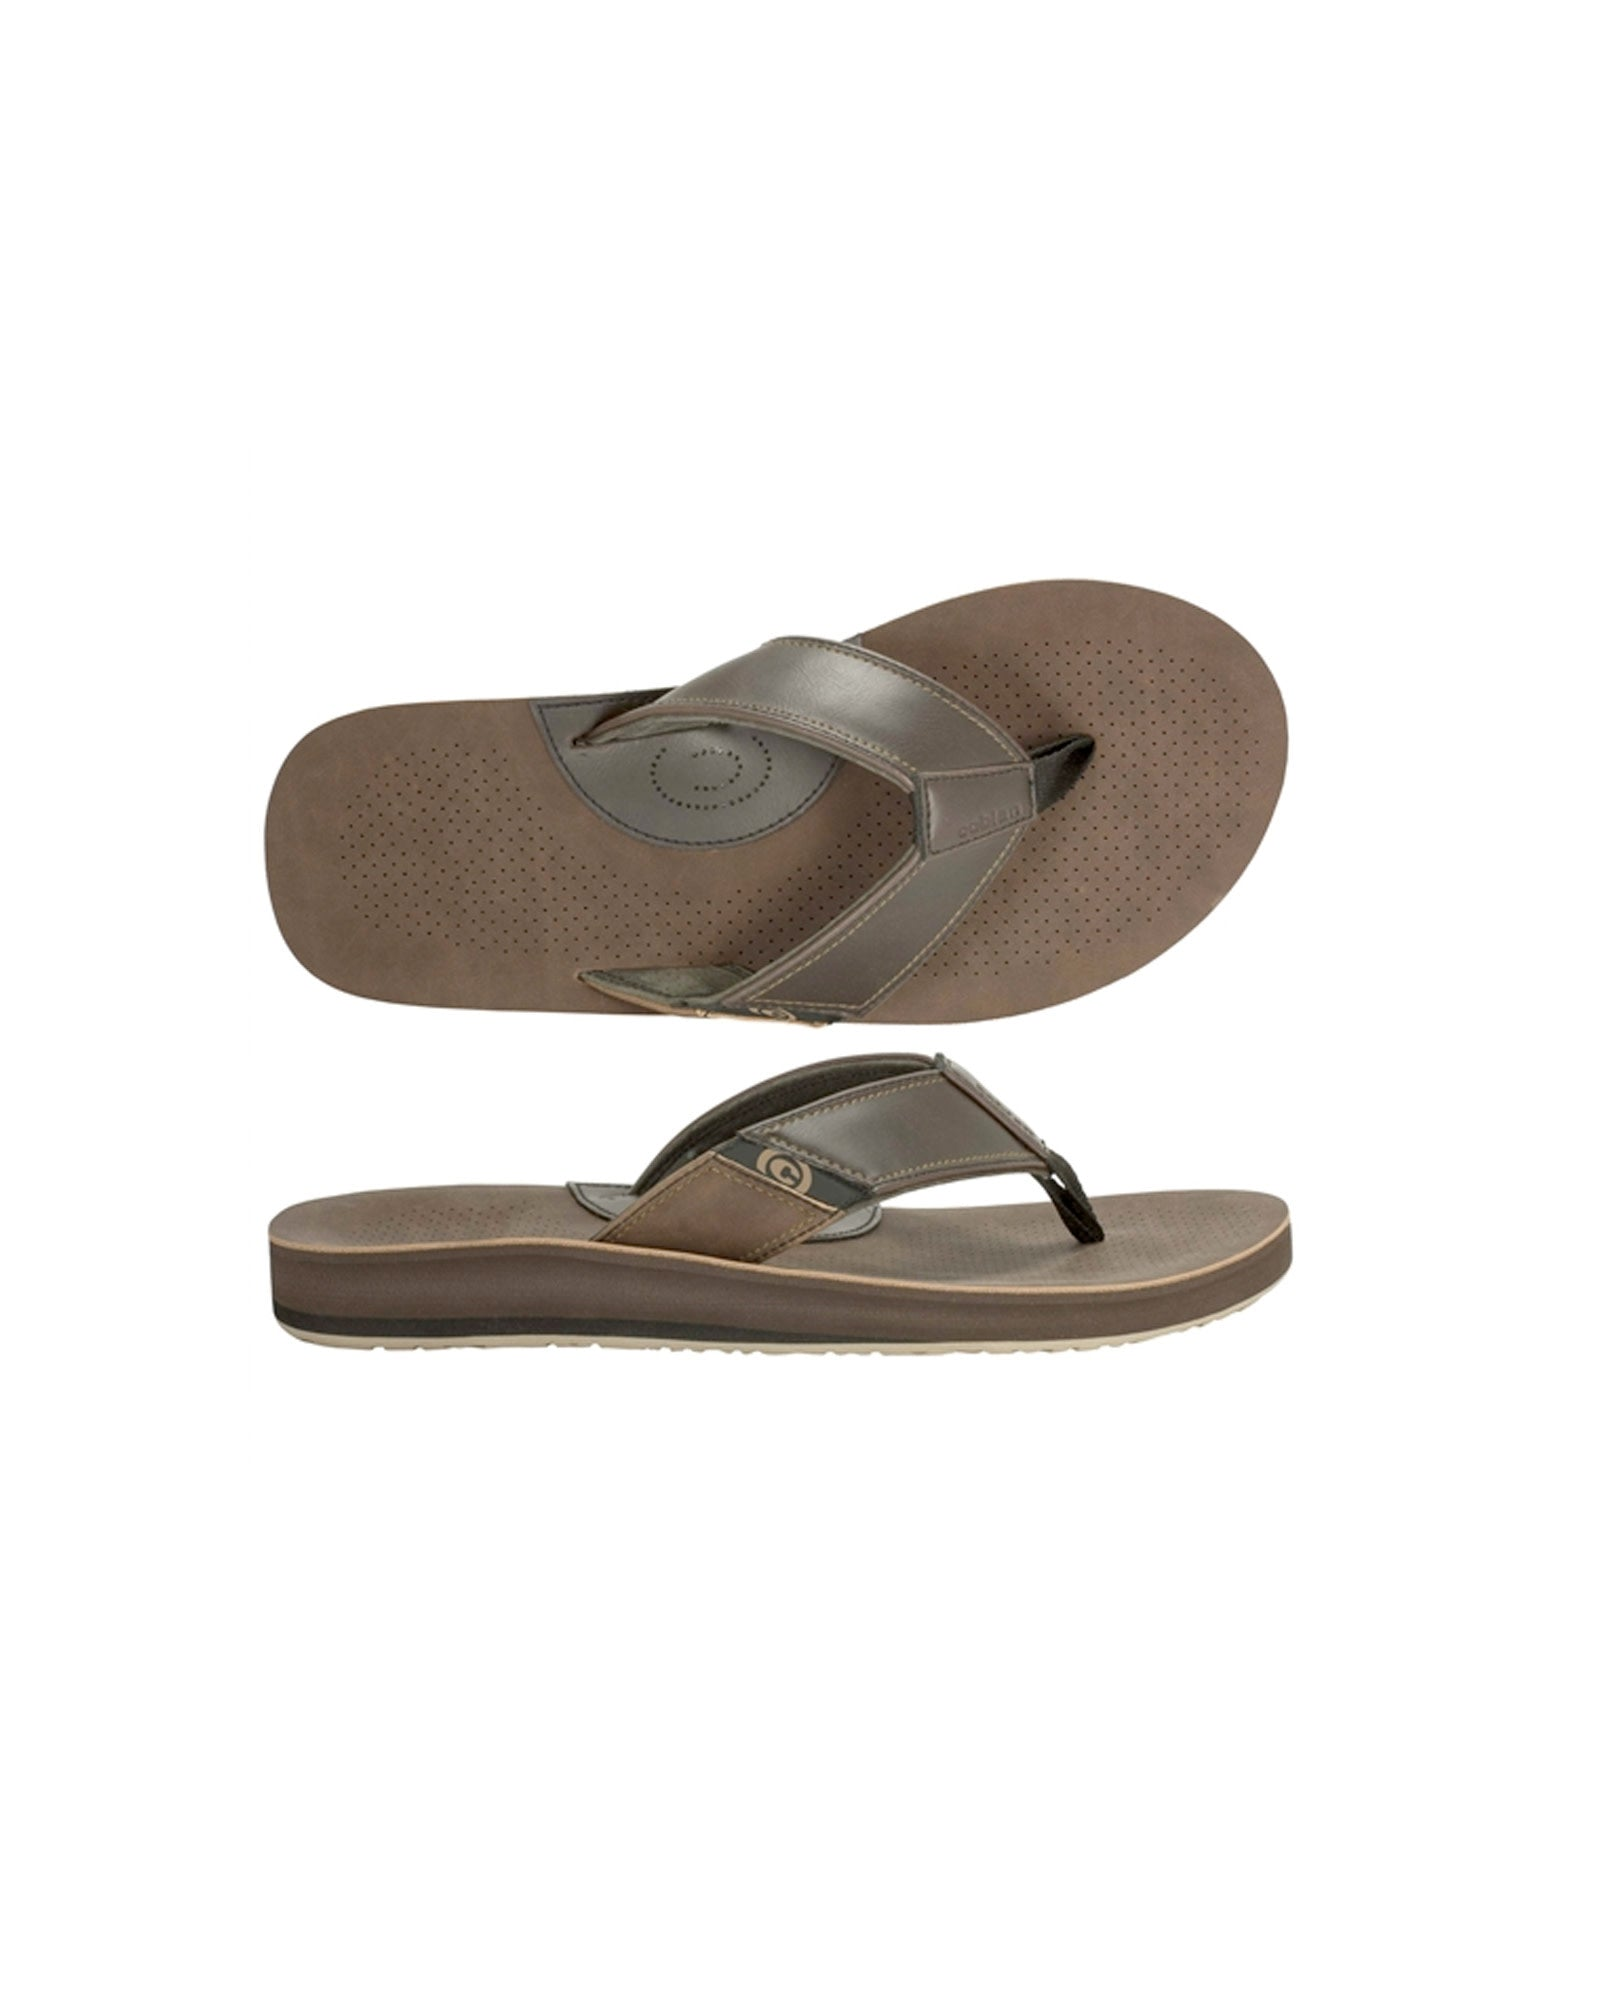 Cobian Monterey Men's Sandals